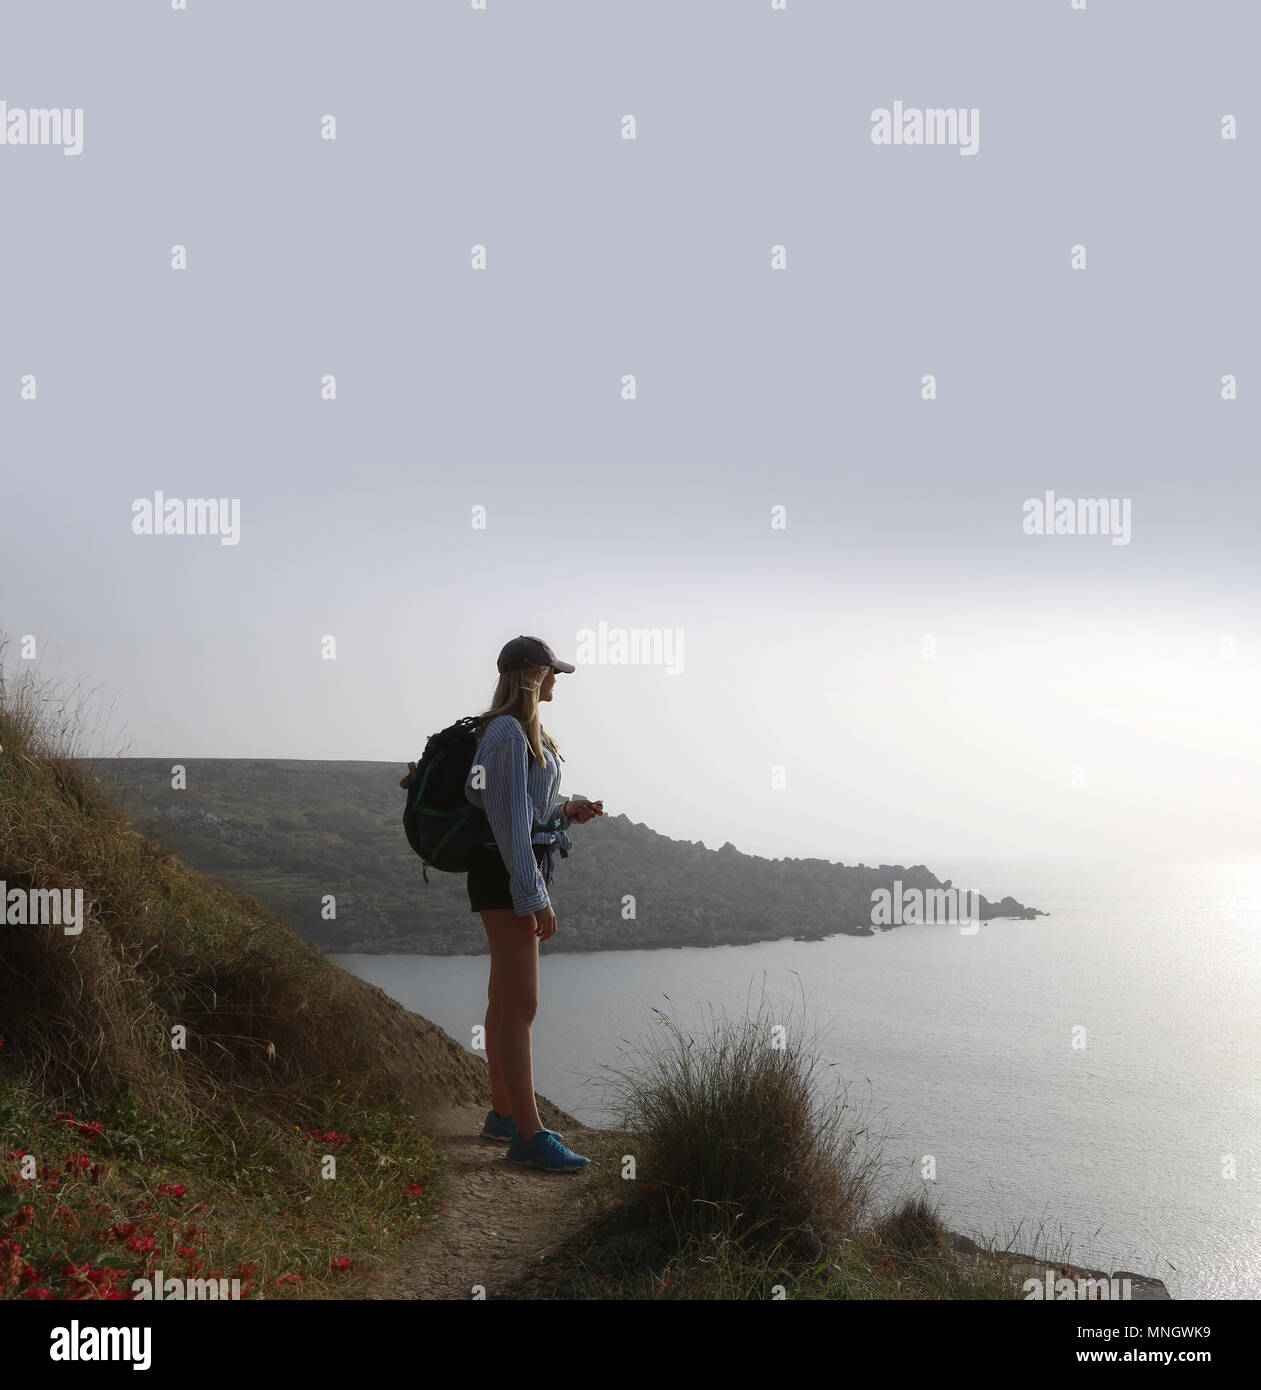 Young woman standing looking out to sea, she is wearing shorts a rucksack and peak cap. She is high up looking down - Stock Image